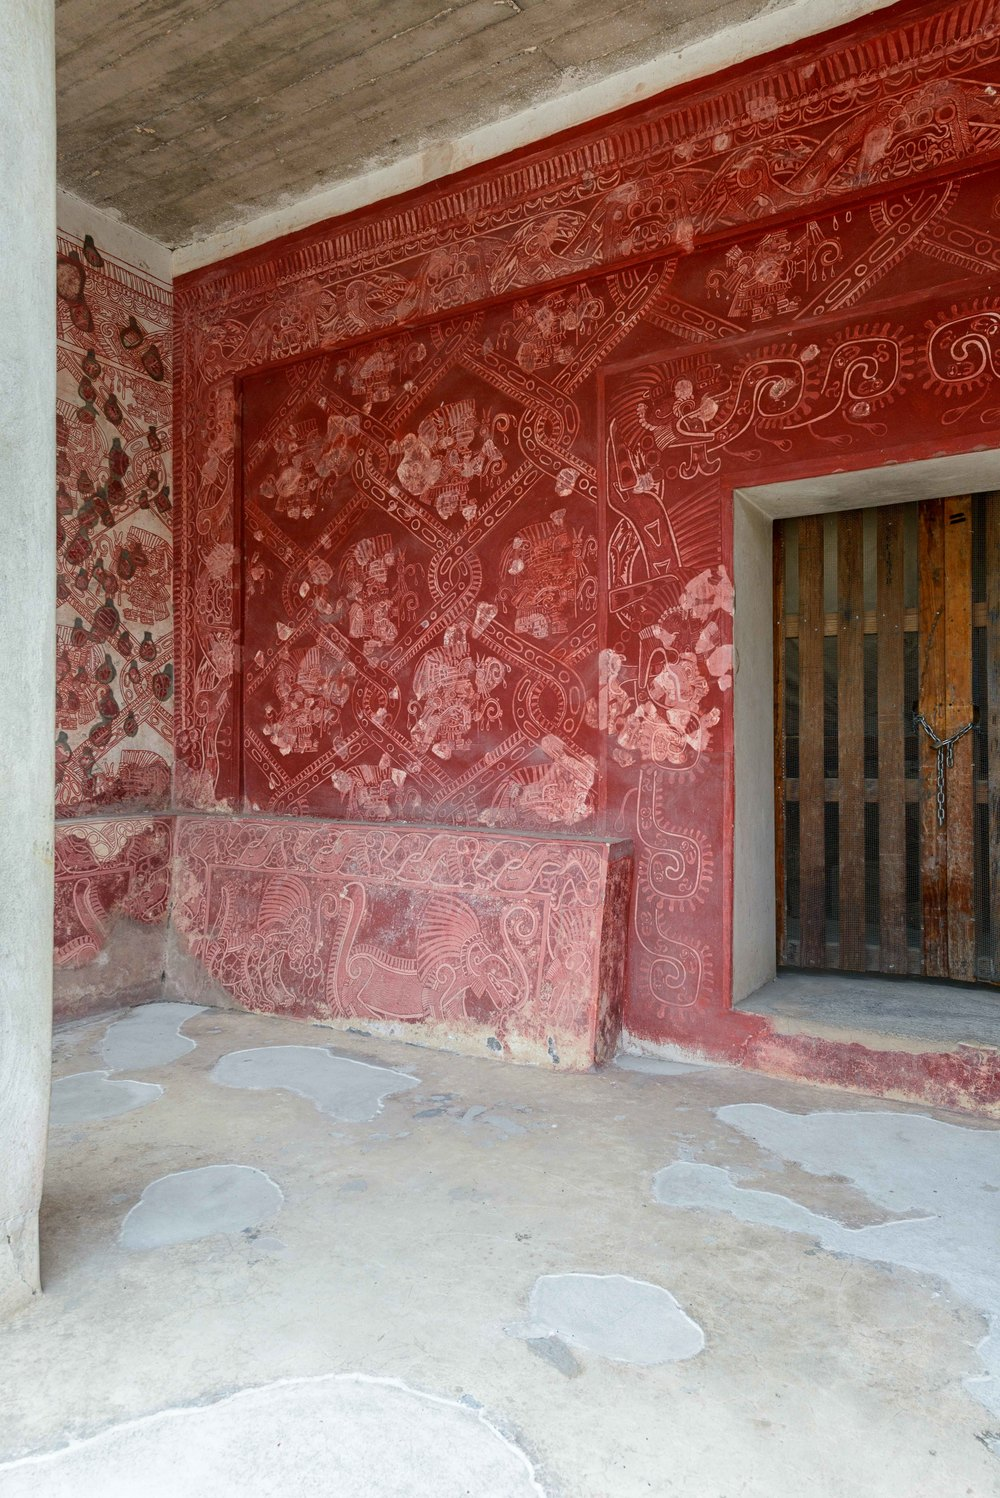 View into one of the temples with murals in Atetelco.